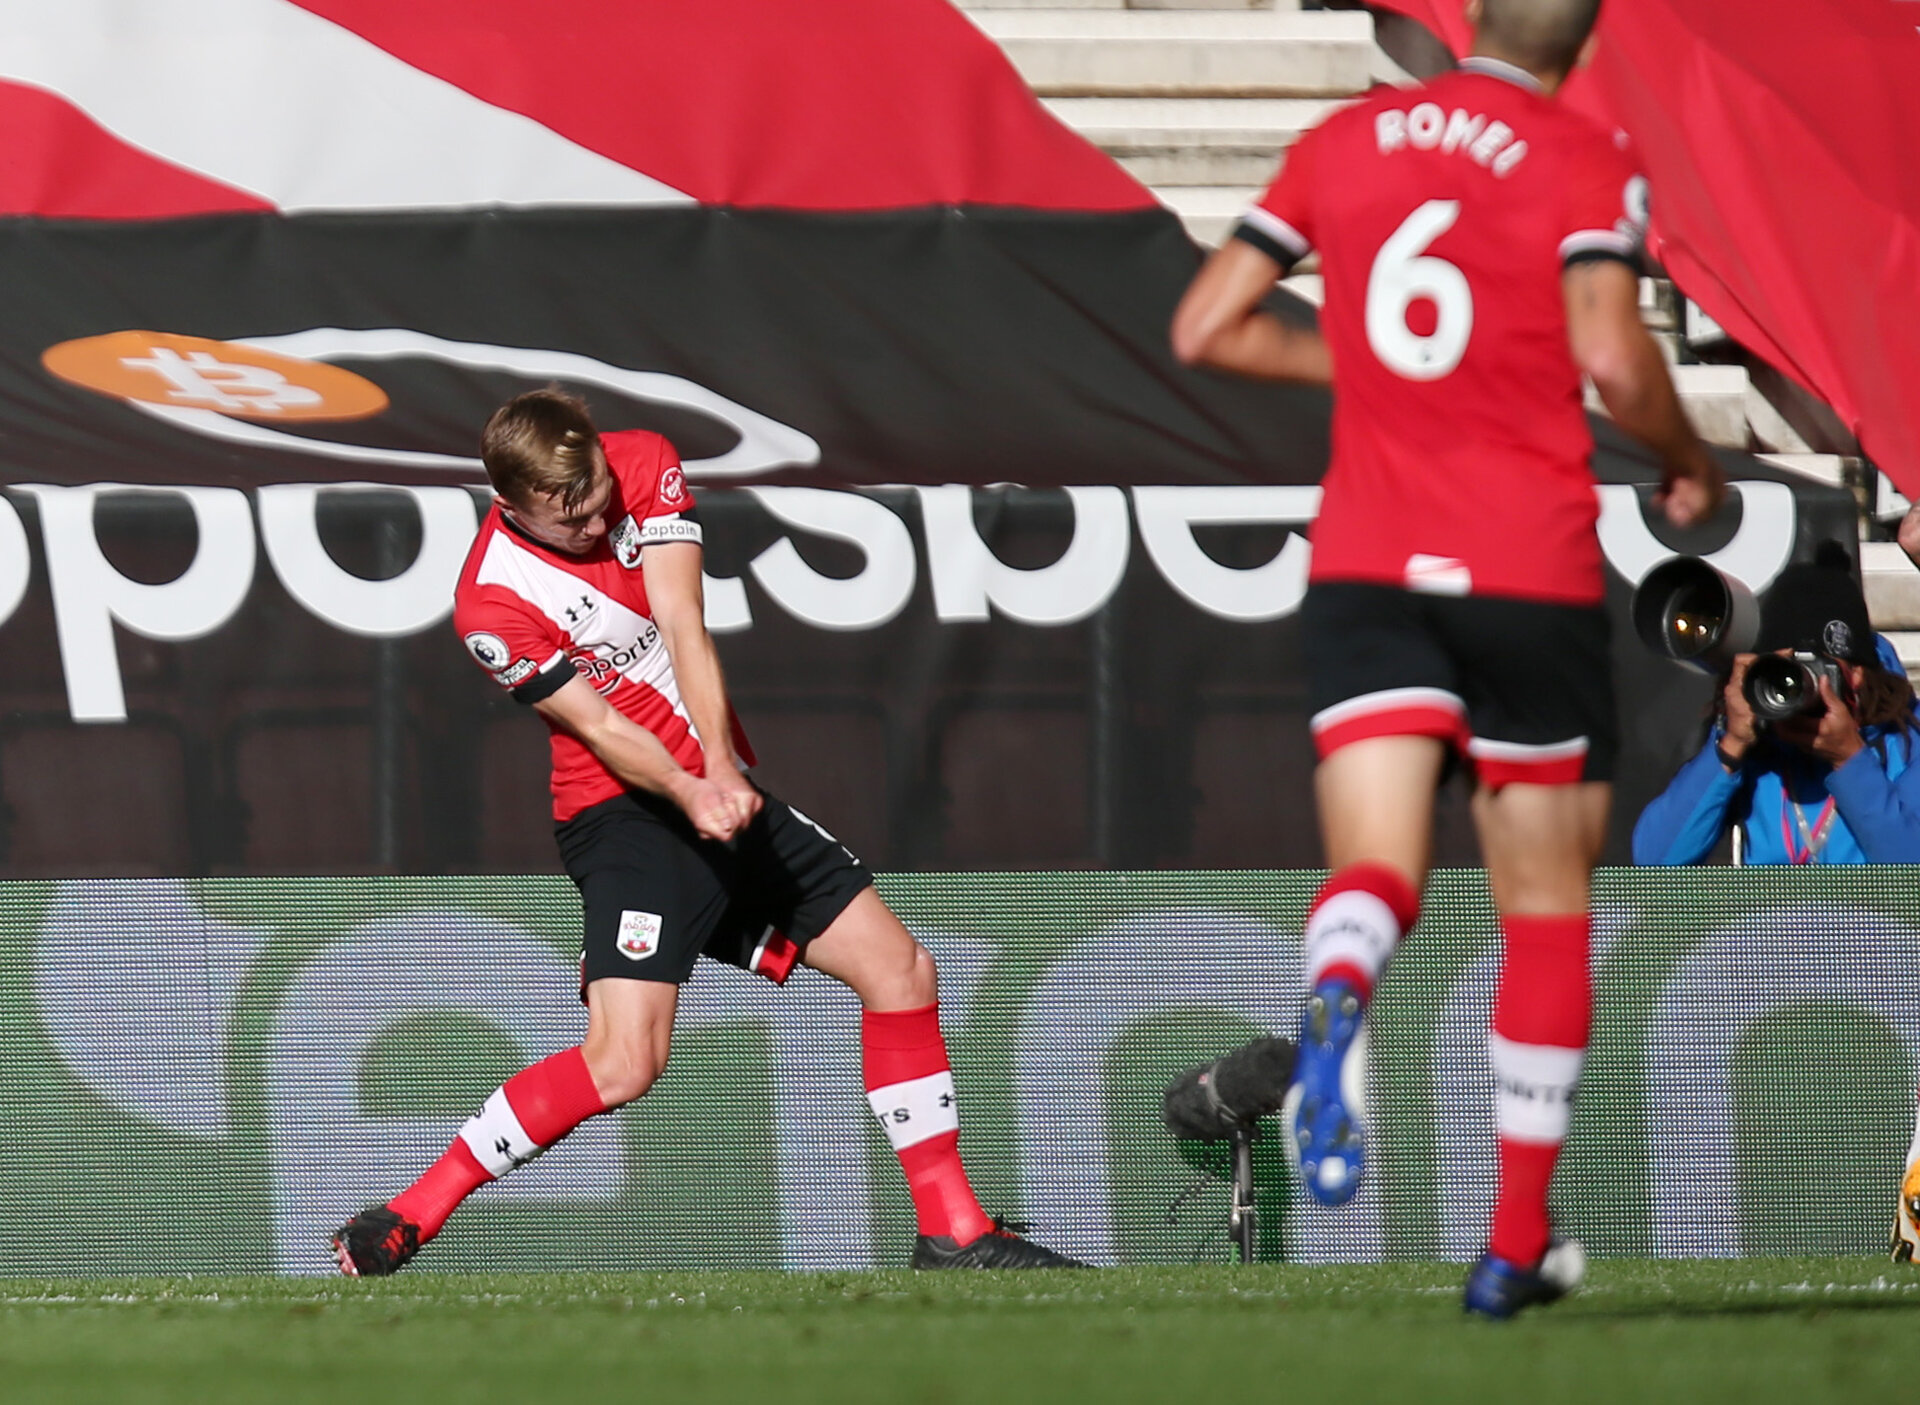 SOUTHAMPTON, ENGLAND - OCTOBER 25: James Ward-Prowse's goal celebration during the Premier League match between Southampton and Everton at St Mary's Stadium on October 25, 2020 in Southampton, United Kingdom. Sporting stadiums around the UK remain under strict restrictions due to the Coronavirus Pandemic as Government social distancing laws prohibit fans inside venues resulting in games being played behind closed doors. (Photo by Chris Moorhouse/Southampton FC via Getty Images)